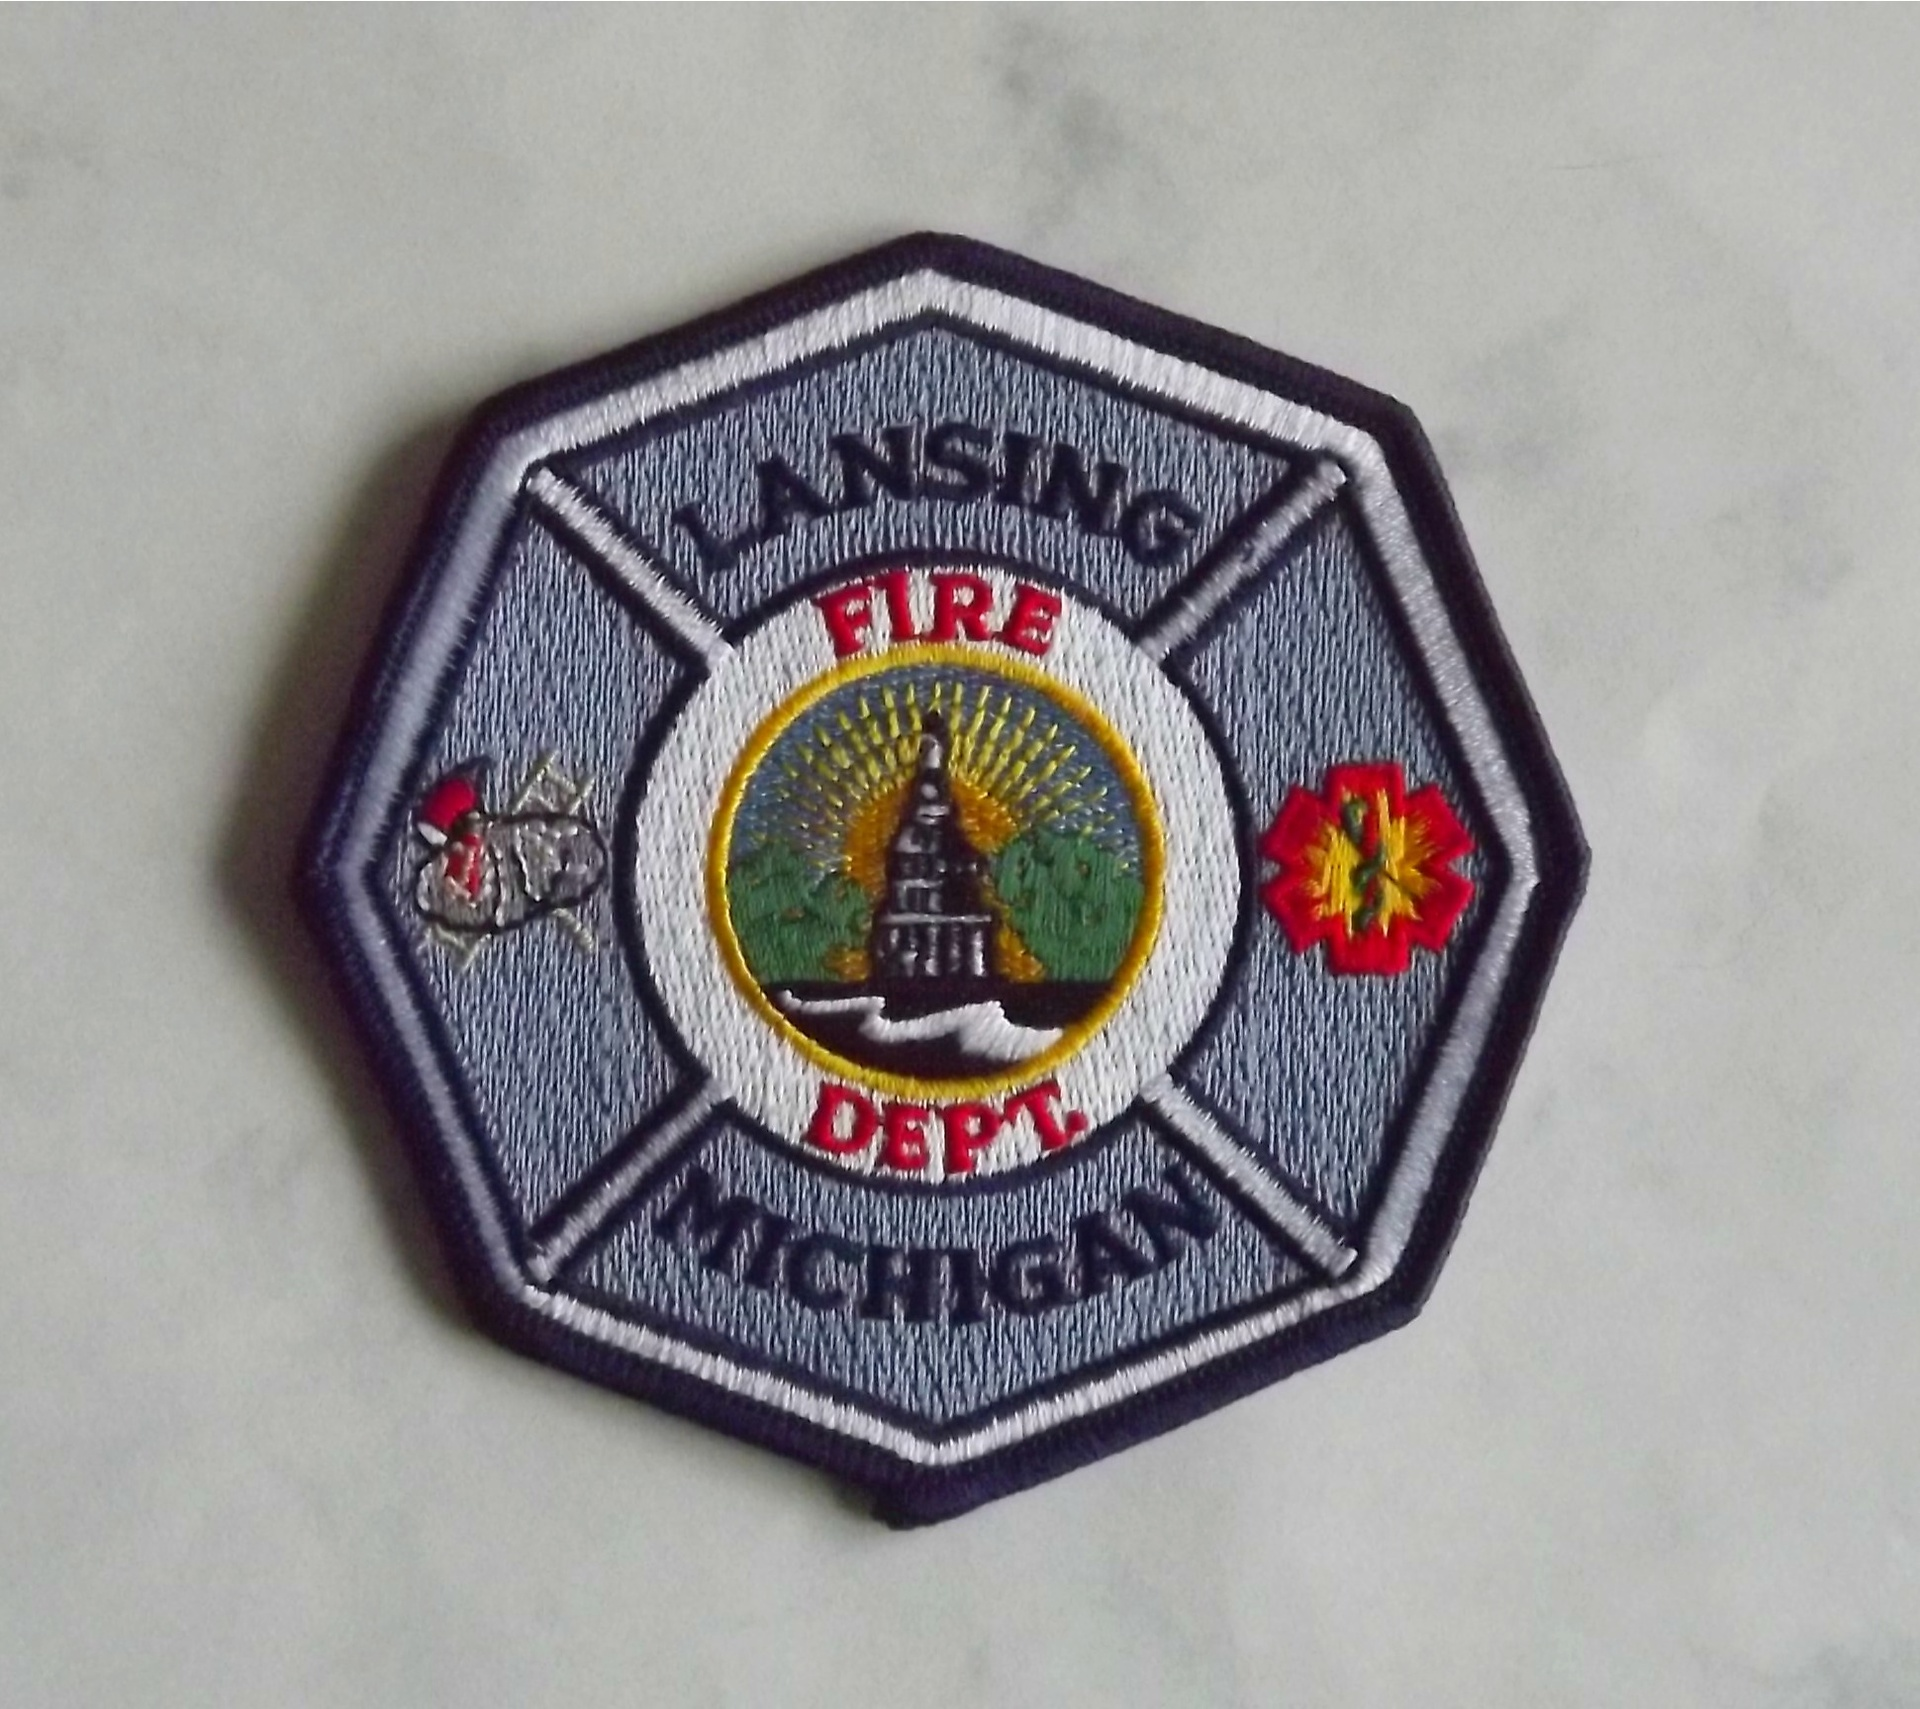 Lansing Michigan Fire Dept.